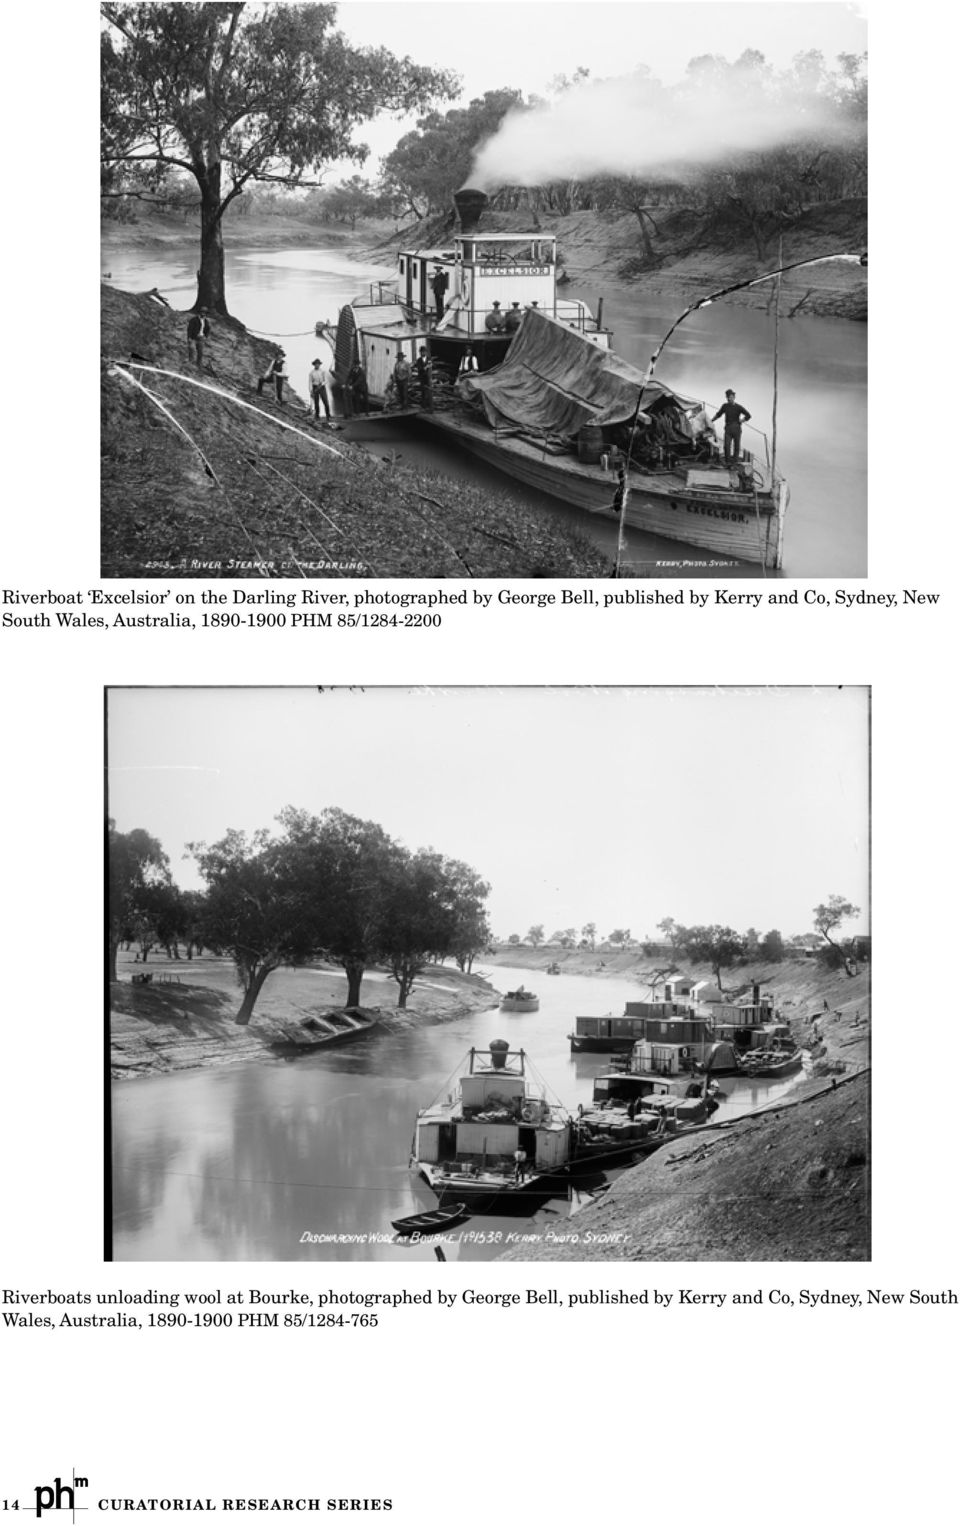 Riverboats unloading wool at Bourke, photographed by George Bell, published by Kerry